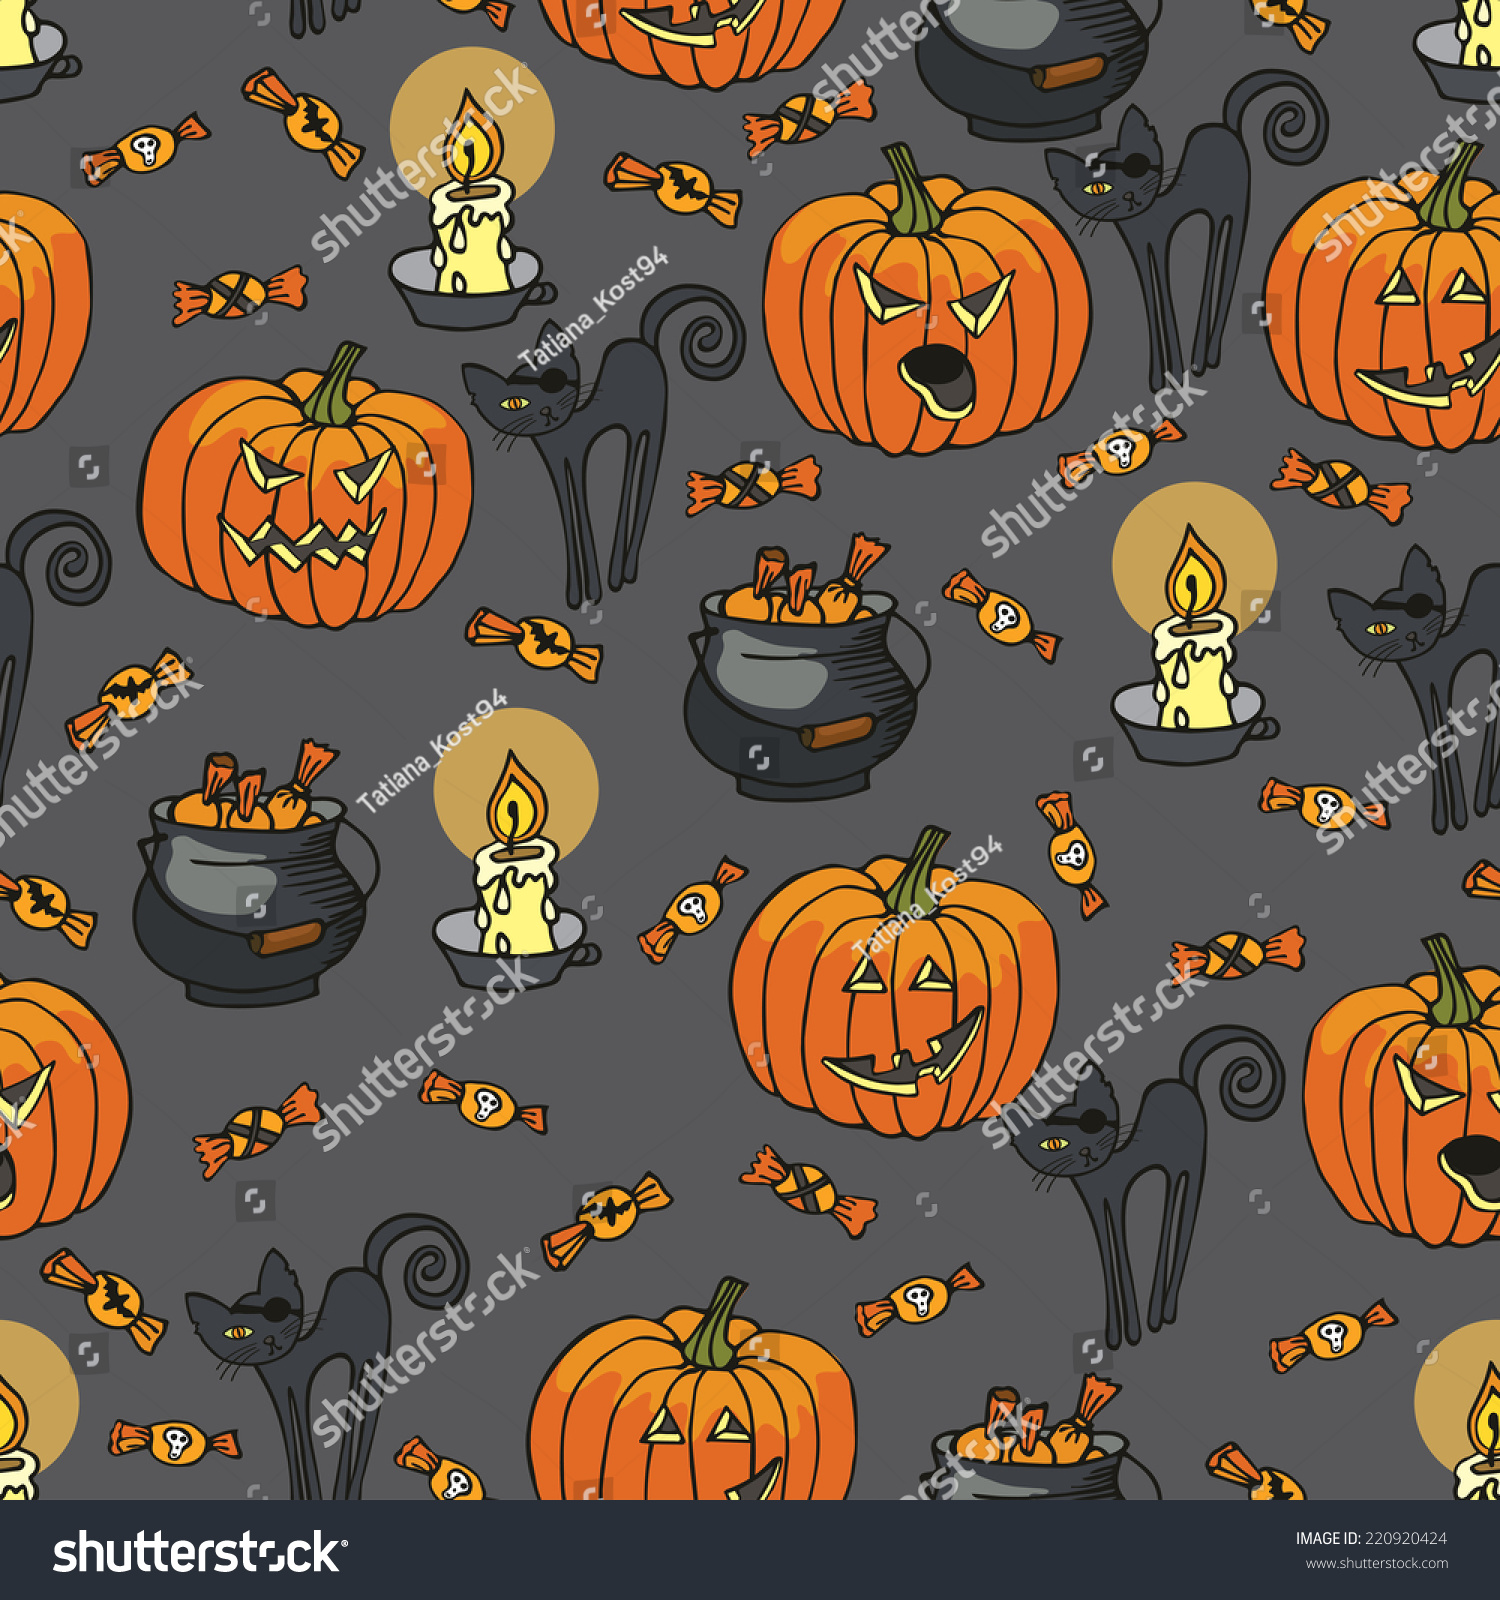 Halloween Doodles Seamless Pattern Backgroundhand Drawing Stock ...